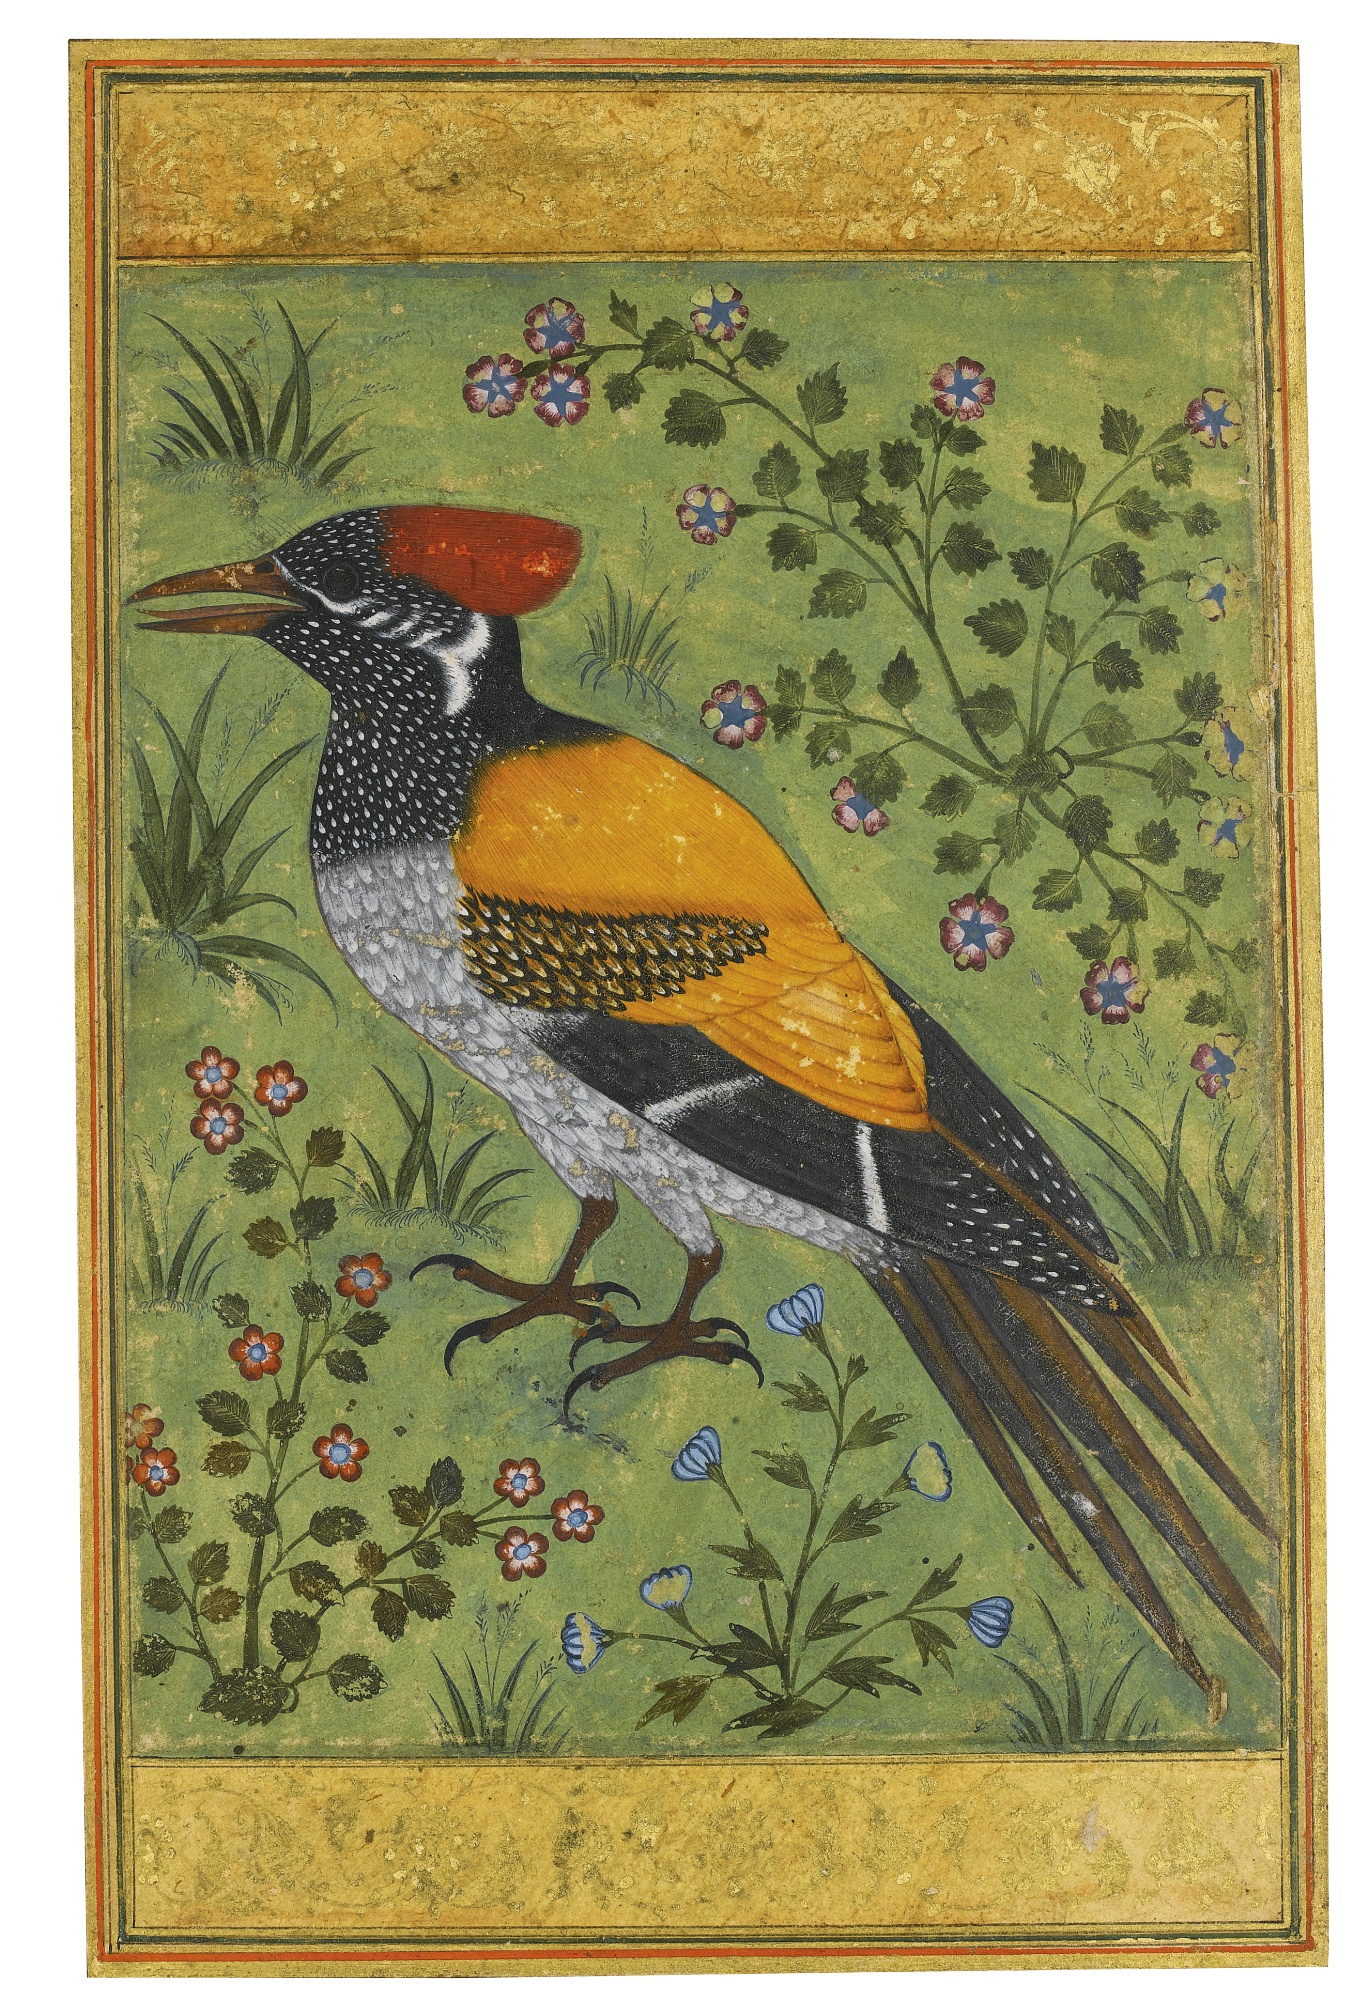 A Yellow-Backed Woodpecker, attributed to Mansur - Mughal Miniature Painting, circa 1585-90